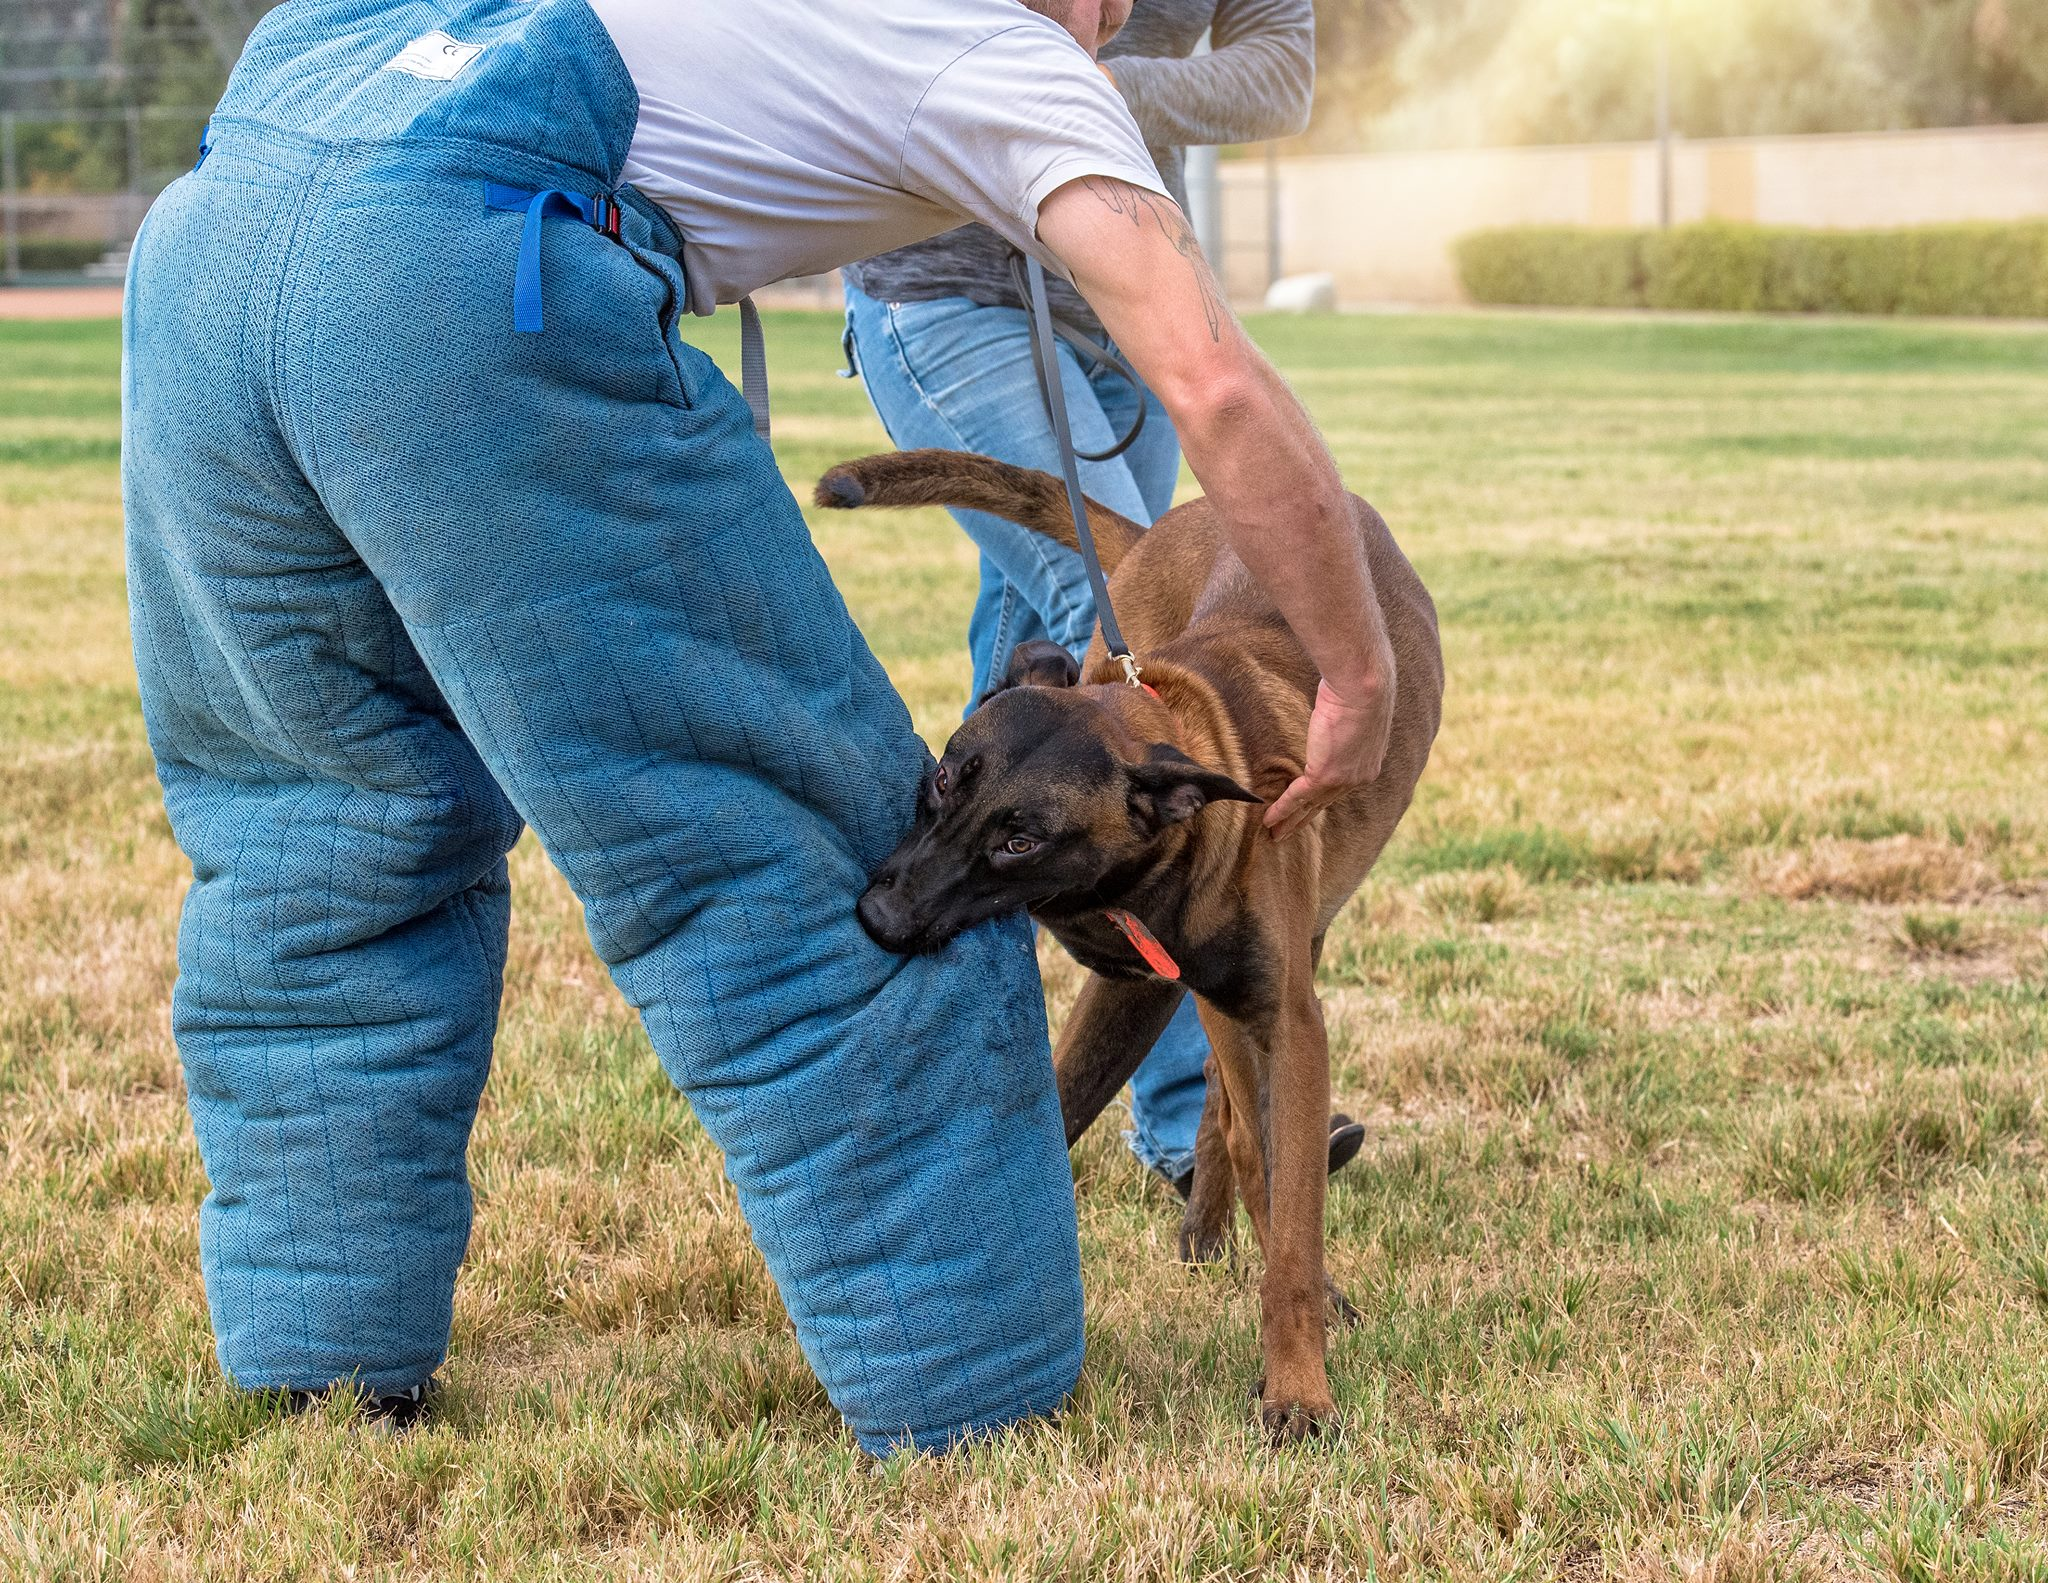 Missed Messages: Is Your Dog Feeling Secure in Bitework or Tug Play?